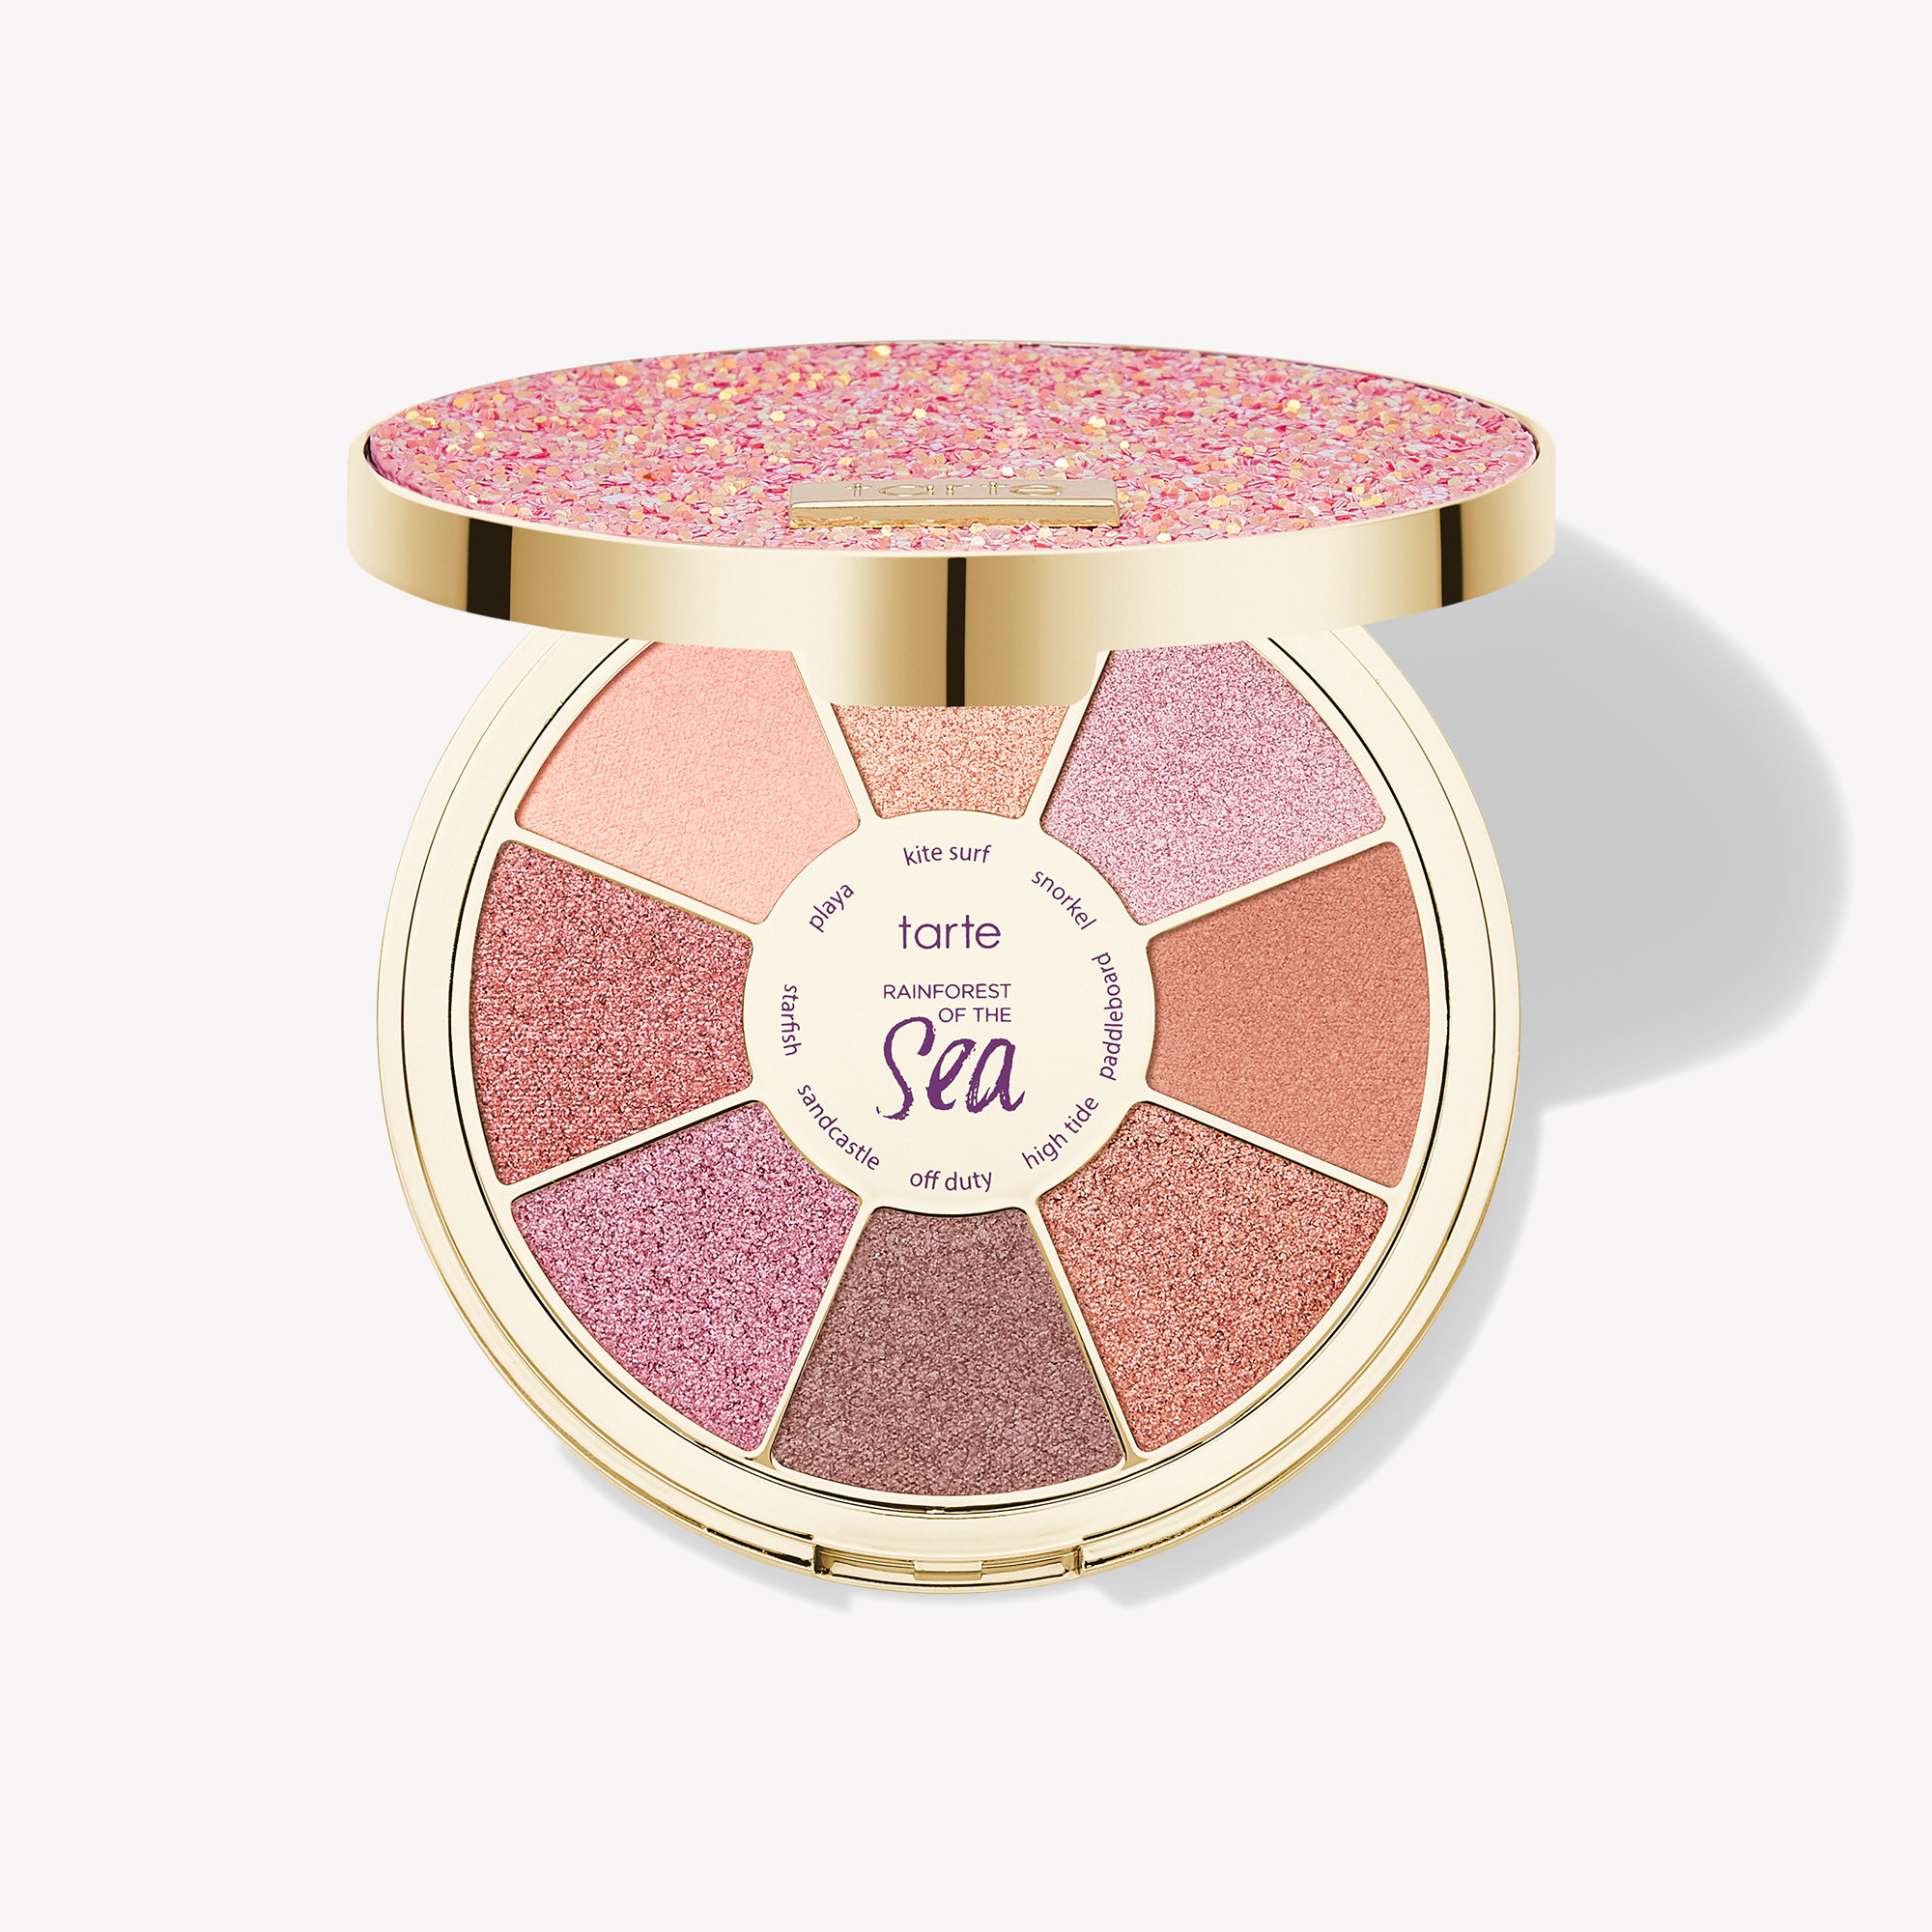 tarte™ Rainforest of the Sea™ sizzle eyeshadow palette